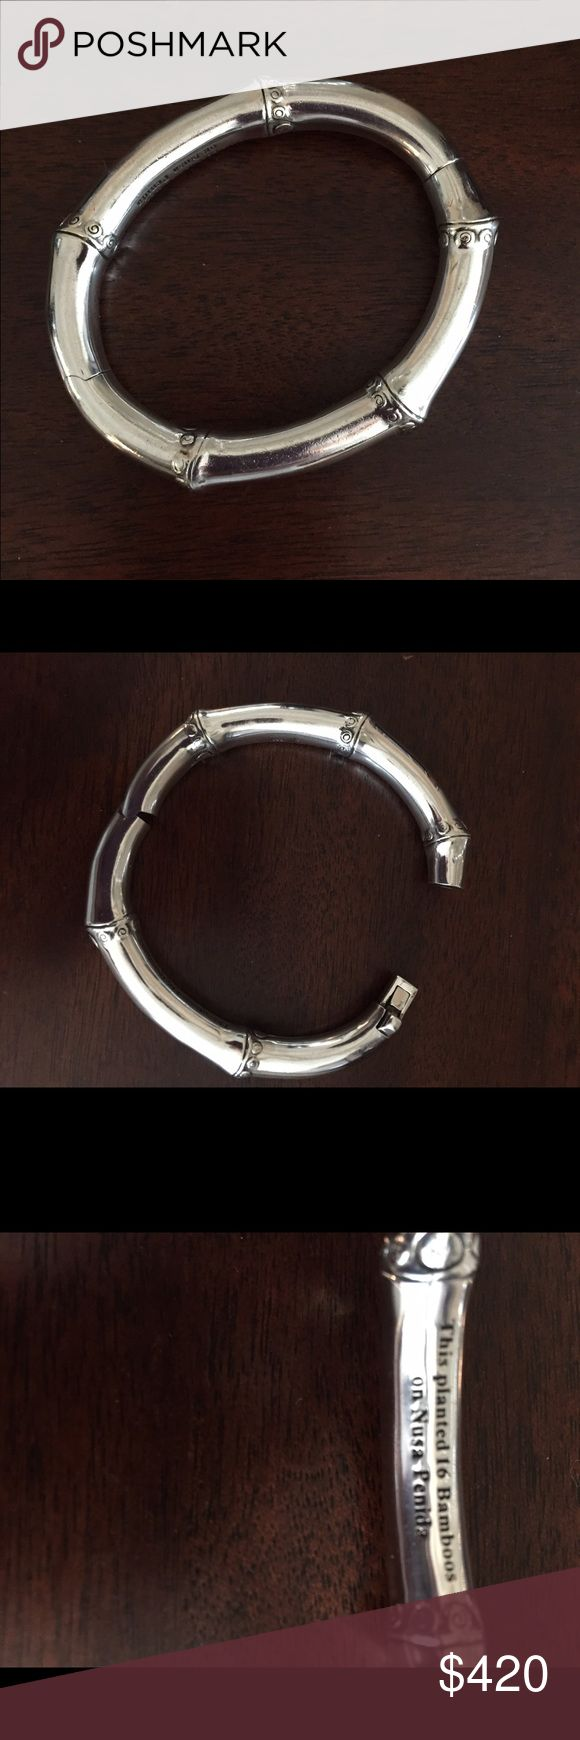 John Hardy Bamboo Bangle Silver John Hardy 8mm Bangle.  Beautiful alone or with other bracelets.  In excellent condition. John Hardy Jewelry Bracelets